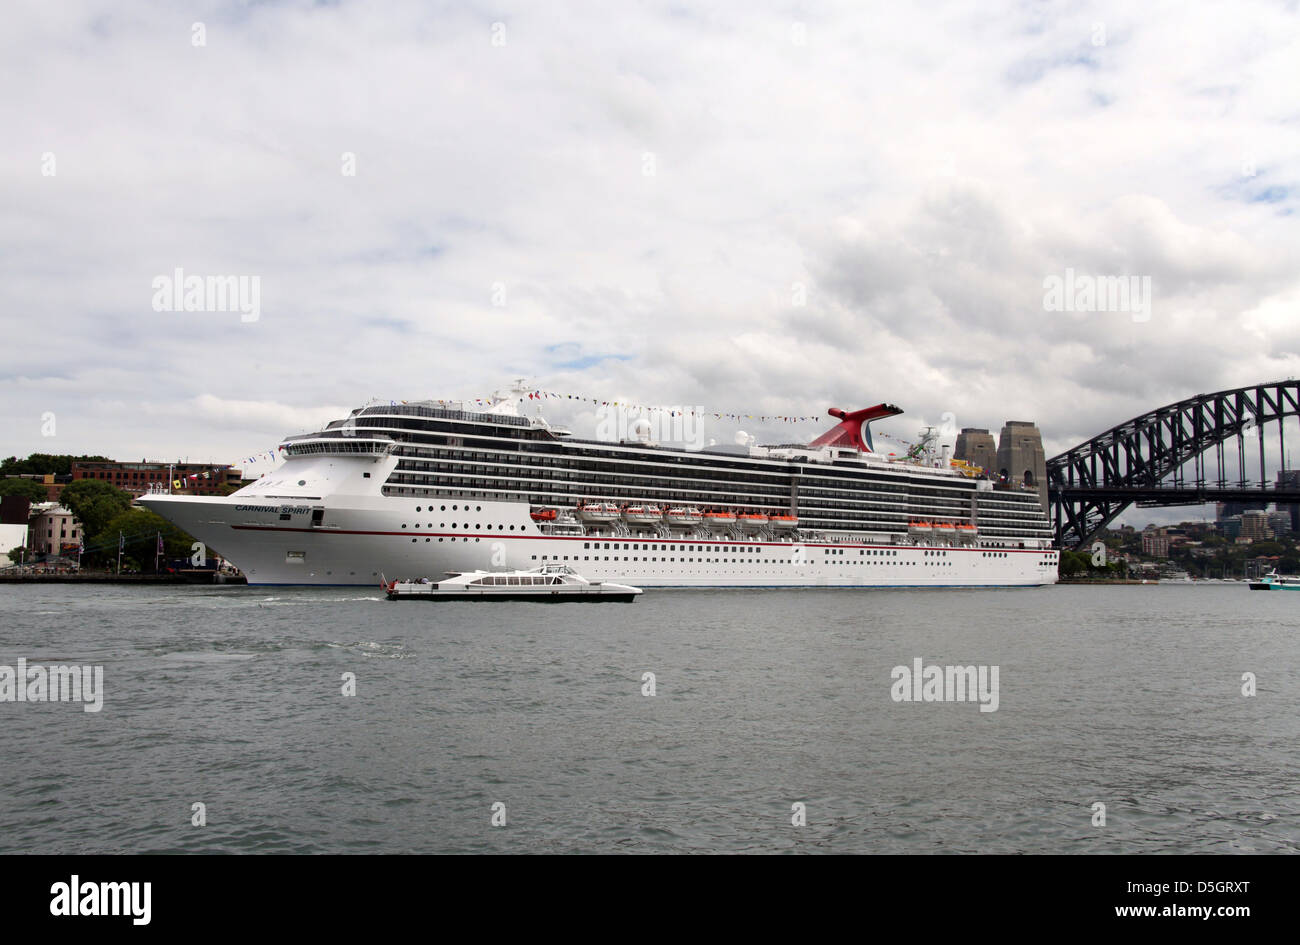 Carnival Spirit Cruise Ship berthed in Sydney Harbour Stock Photo